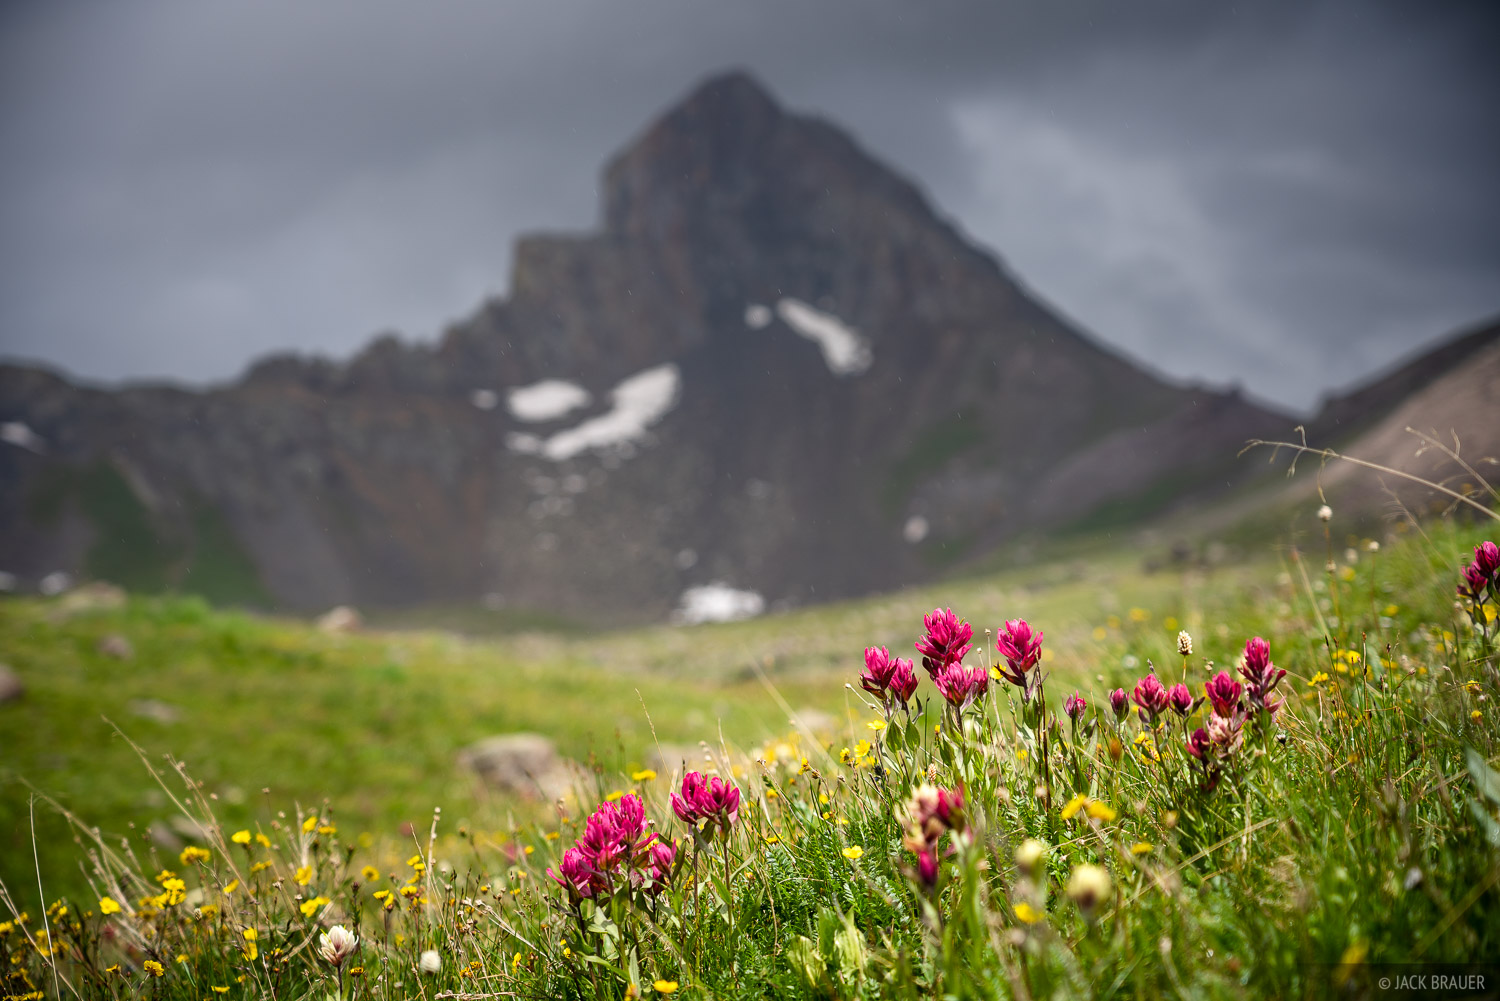 Colorado, San Juan Mountains, Uncompahgre Wilderness, Wetterhorn Basin, Wetterhorn Peak, wildflowers, photo